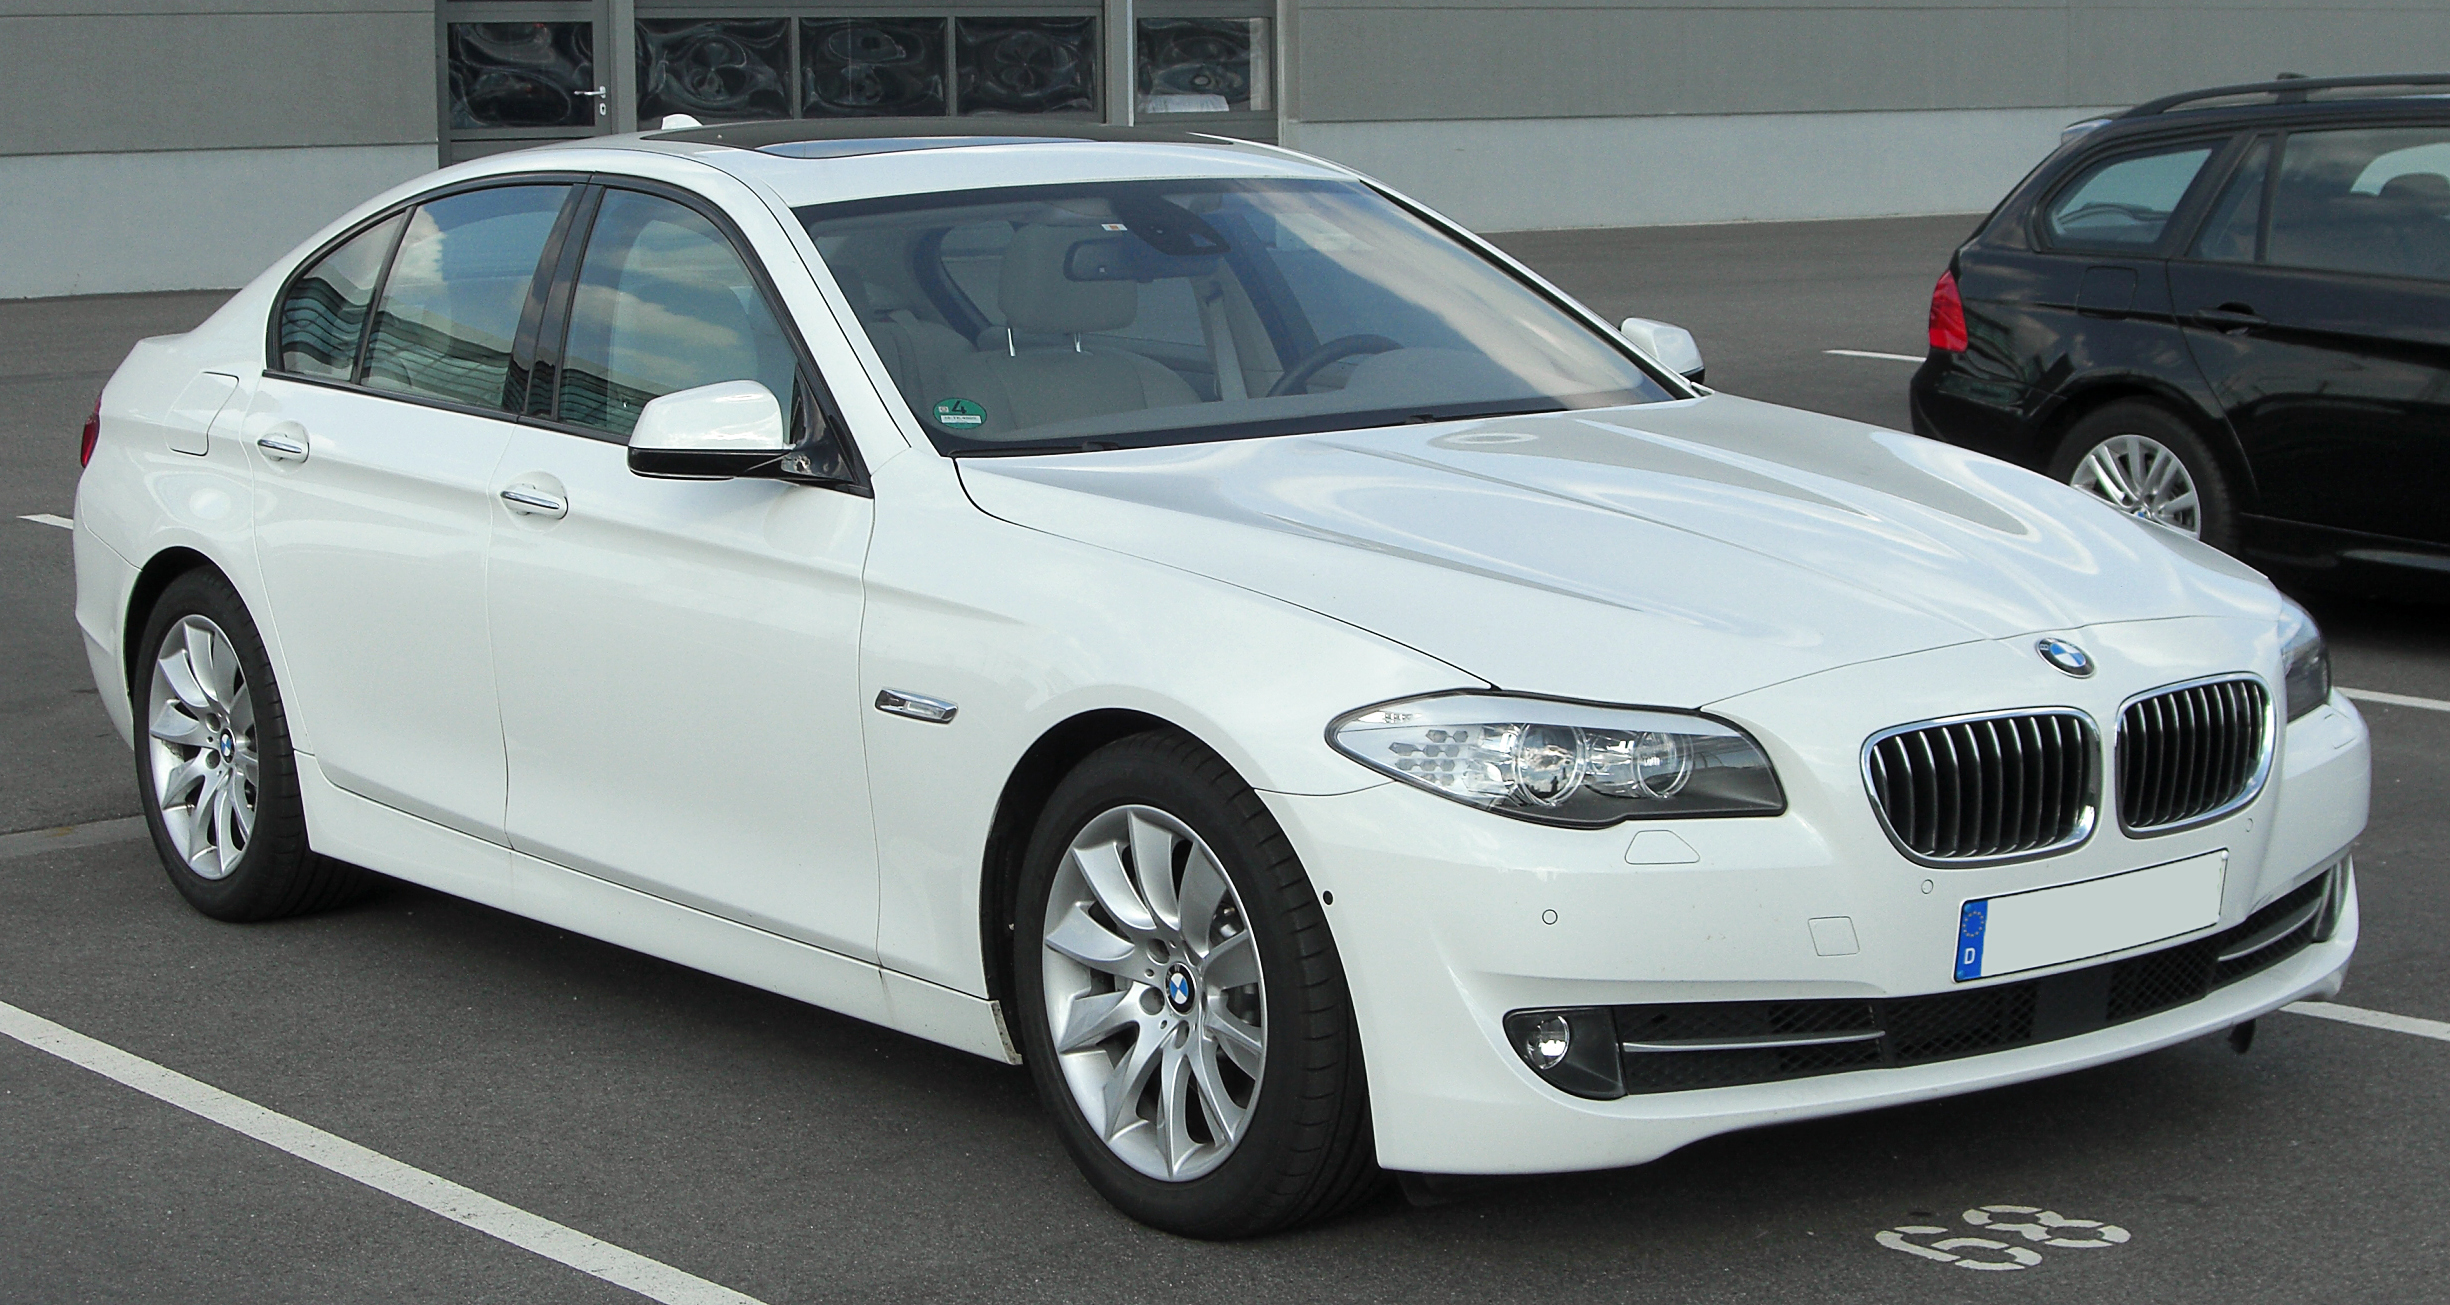 File:BMW 530d (F10) front 20100821.jpg - Wikimedia Commons